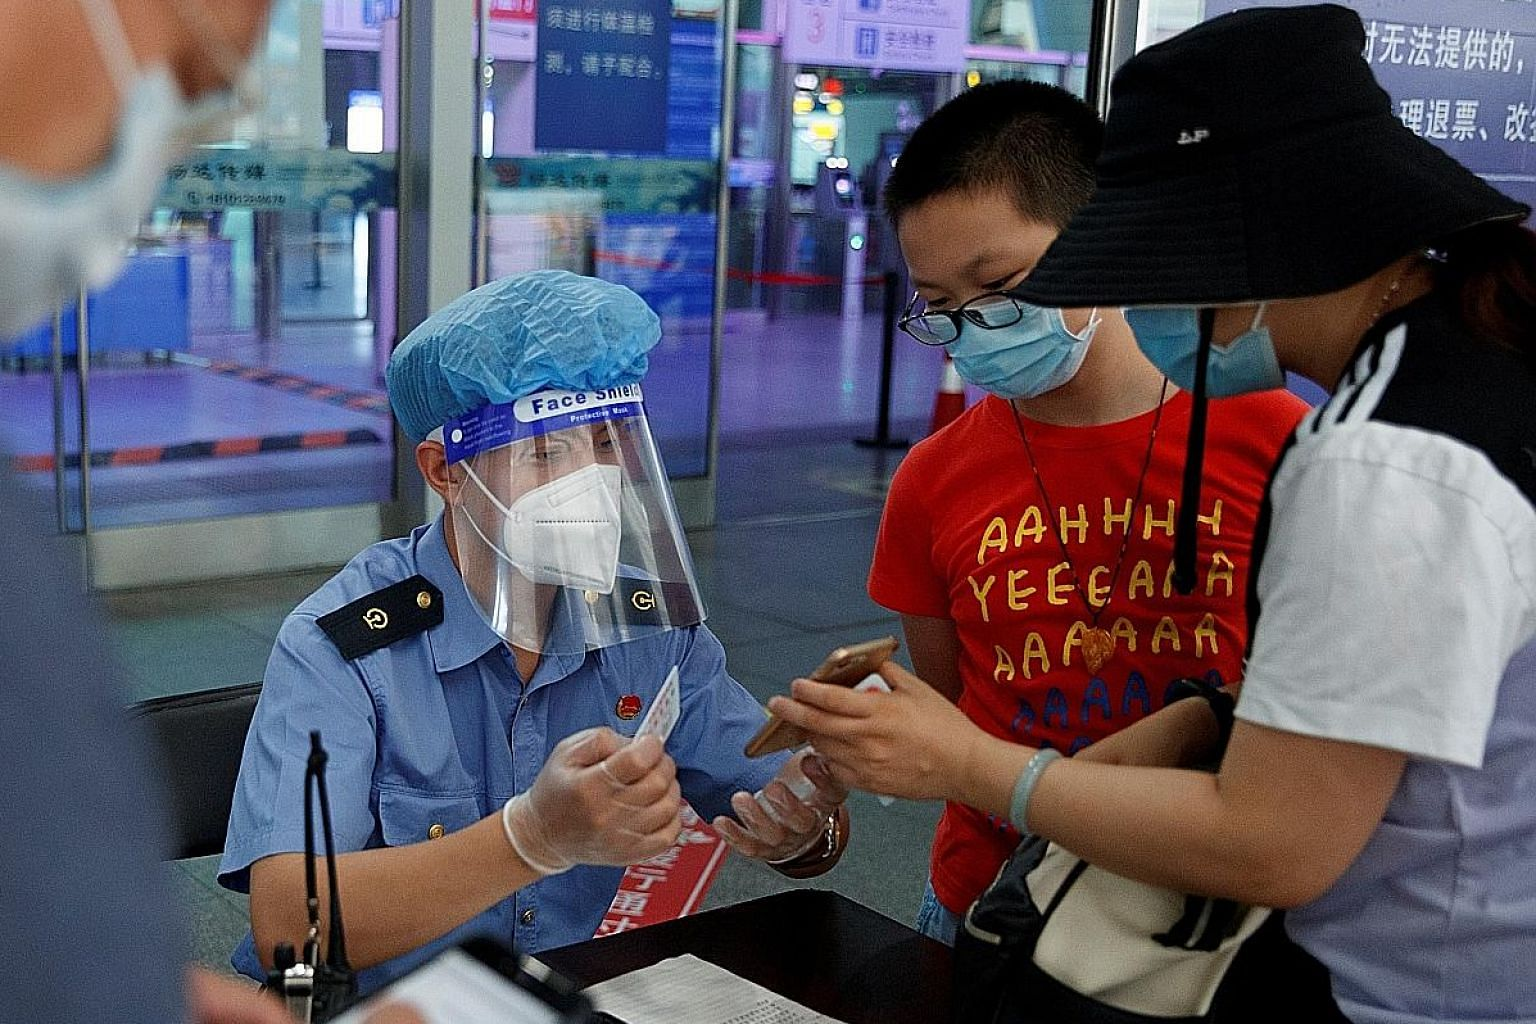 An employee checking the identity and health status of travellers before they enter the Beijing South Railway Station on Friday. PHOTO: REUTERS